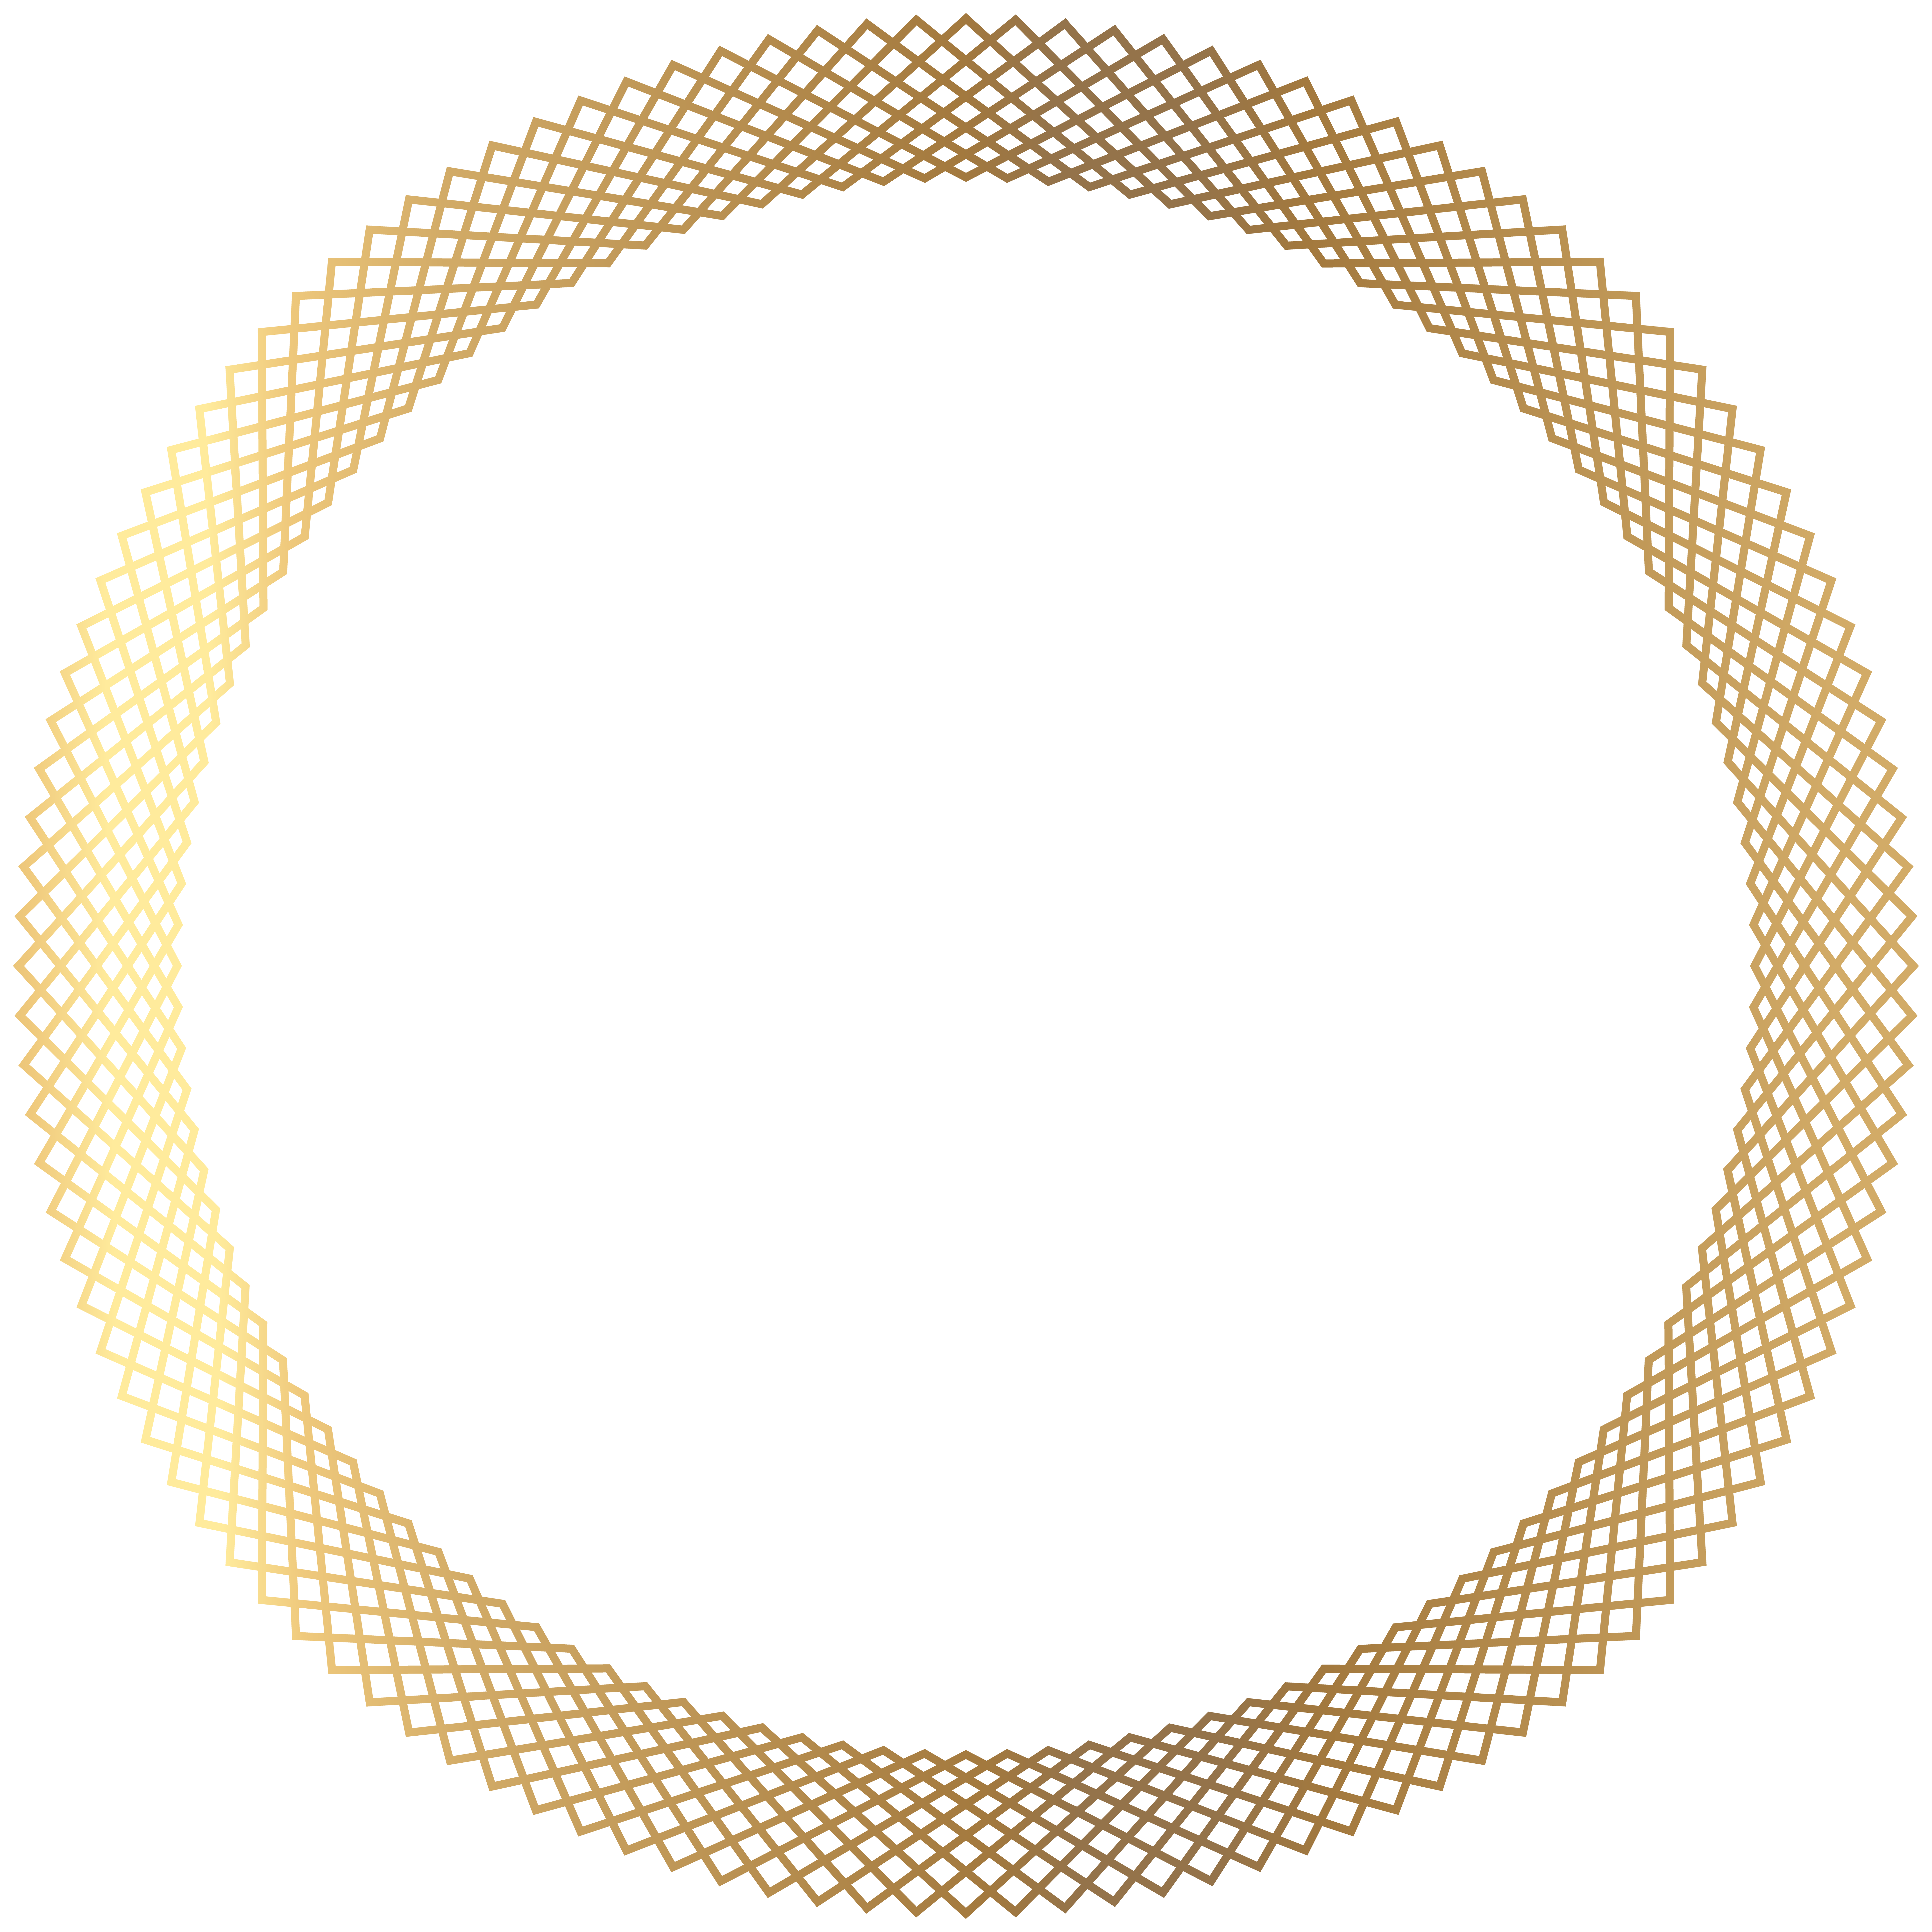 Deco clipart round. Gold border png transparent